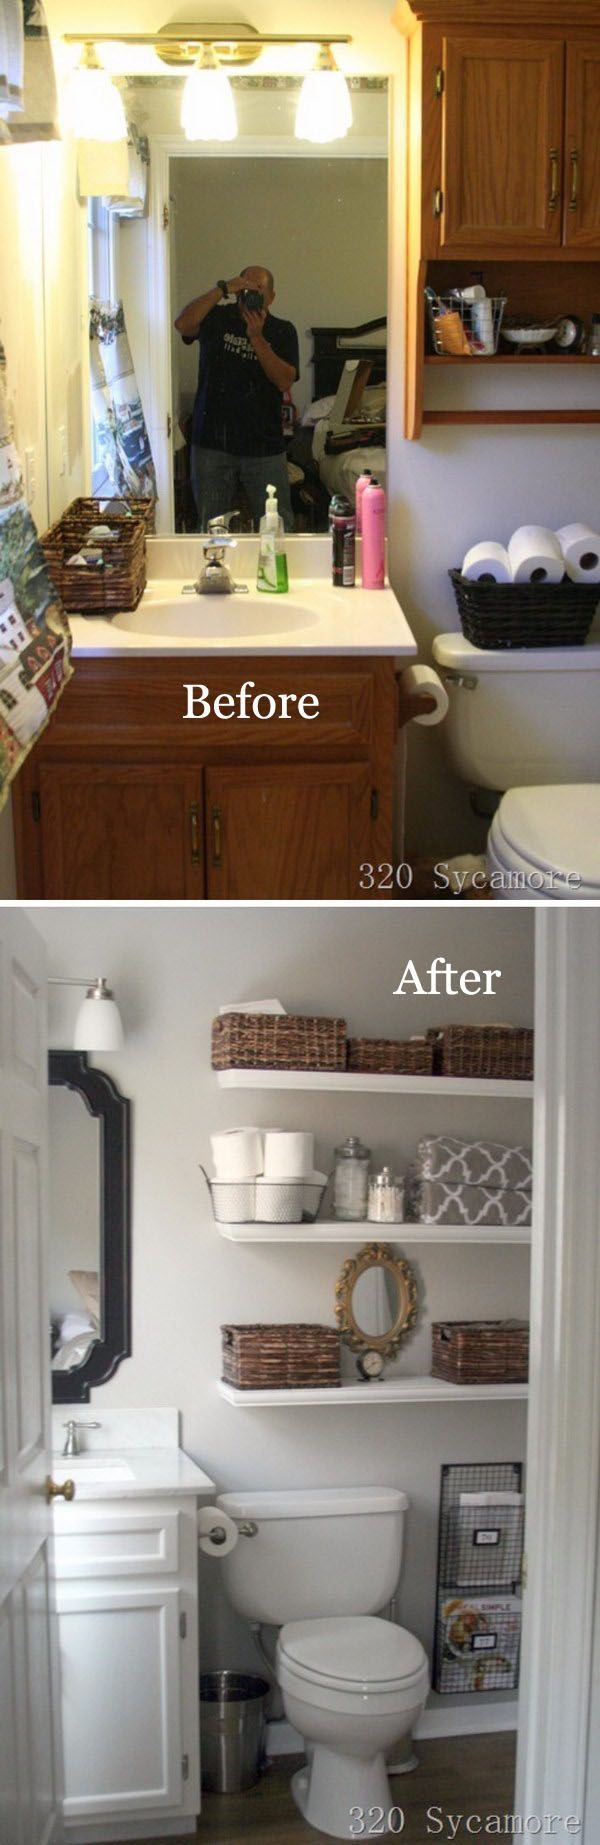 Master Bath Remodel Ideas Decor Beauteous Best 25 Small Master Bathroom Ideas Ideas On Pinterest  Small . Decorating Design